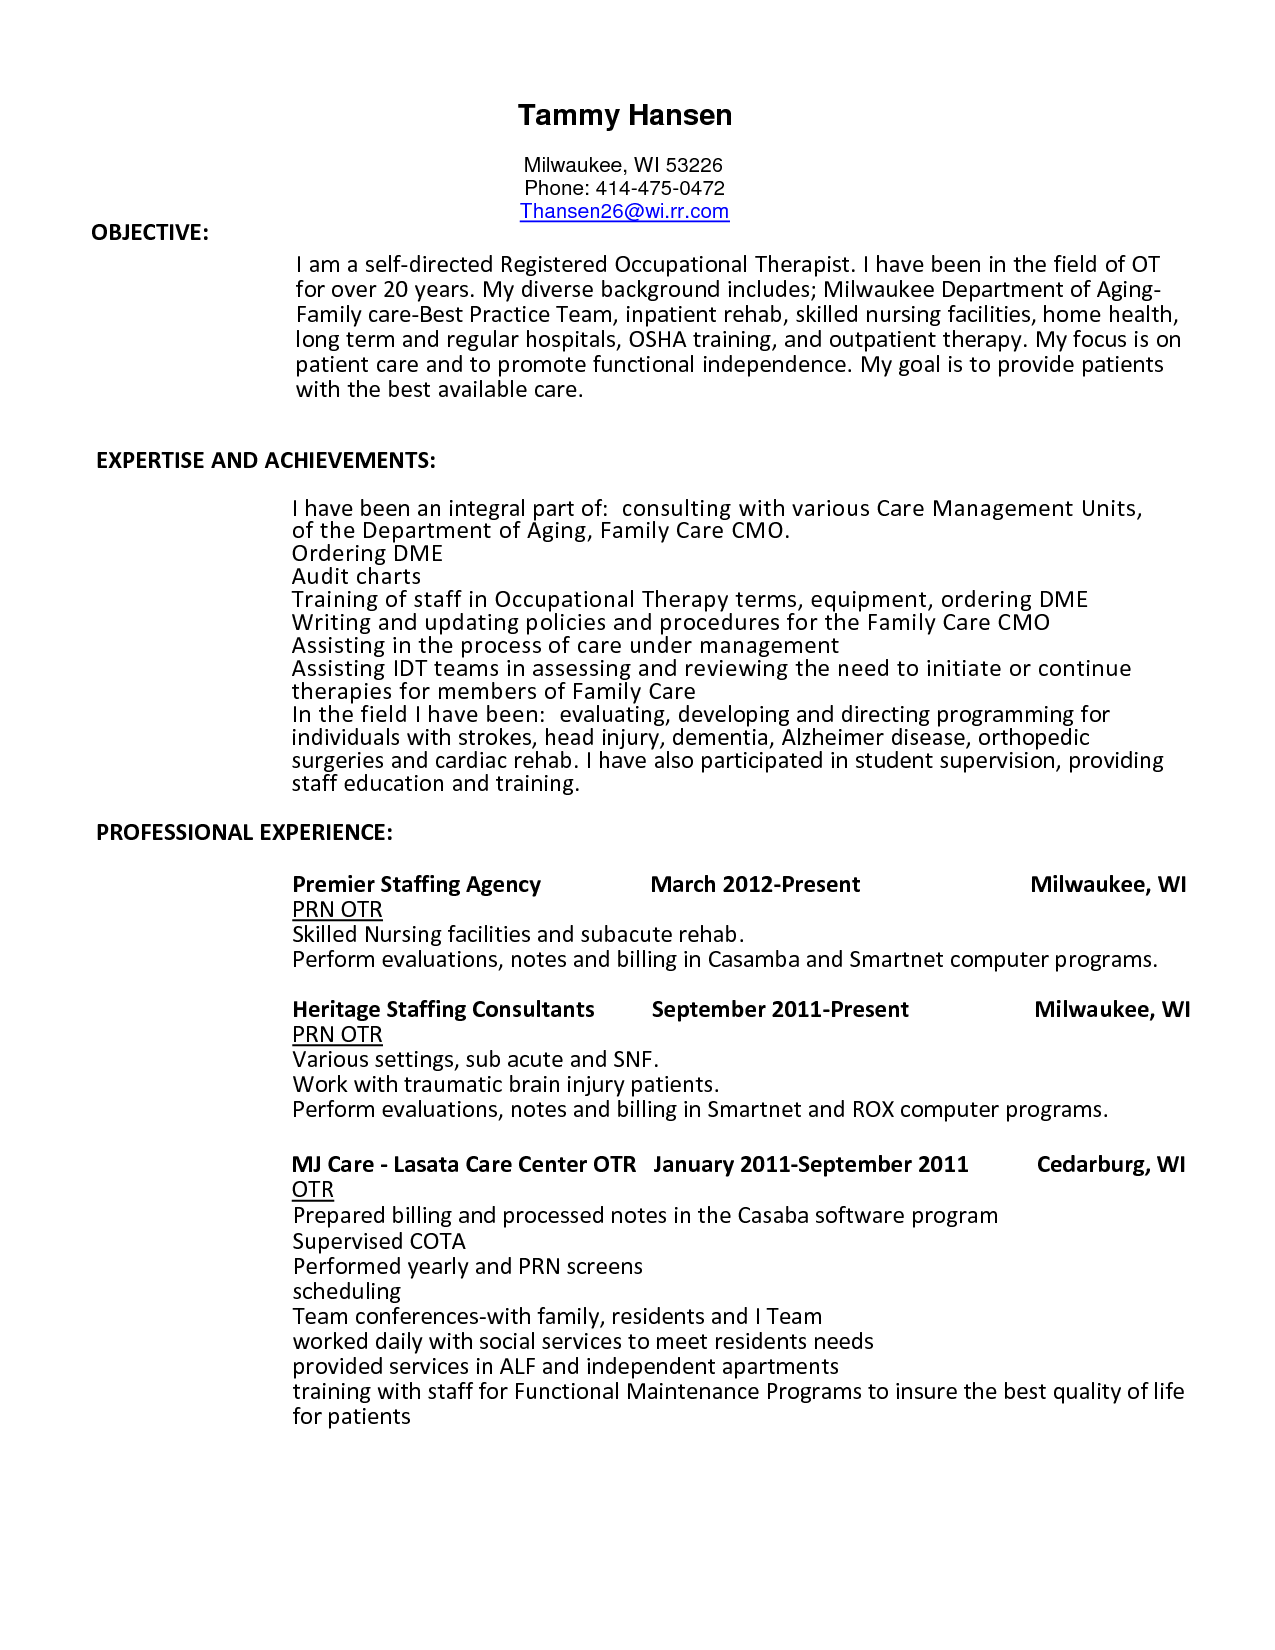 Resume Examples Me Nbspthis Website Is For Sale Nbspresume Examples Resources And Information Resume Examples Physical Therapy Assistant Occupational Therapy Assistant